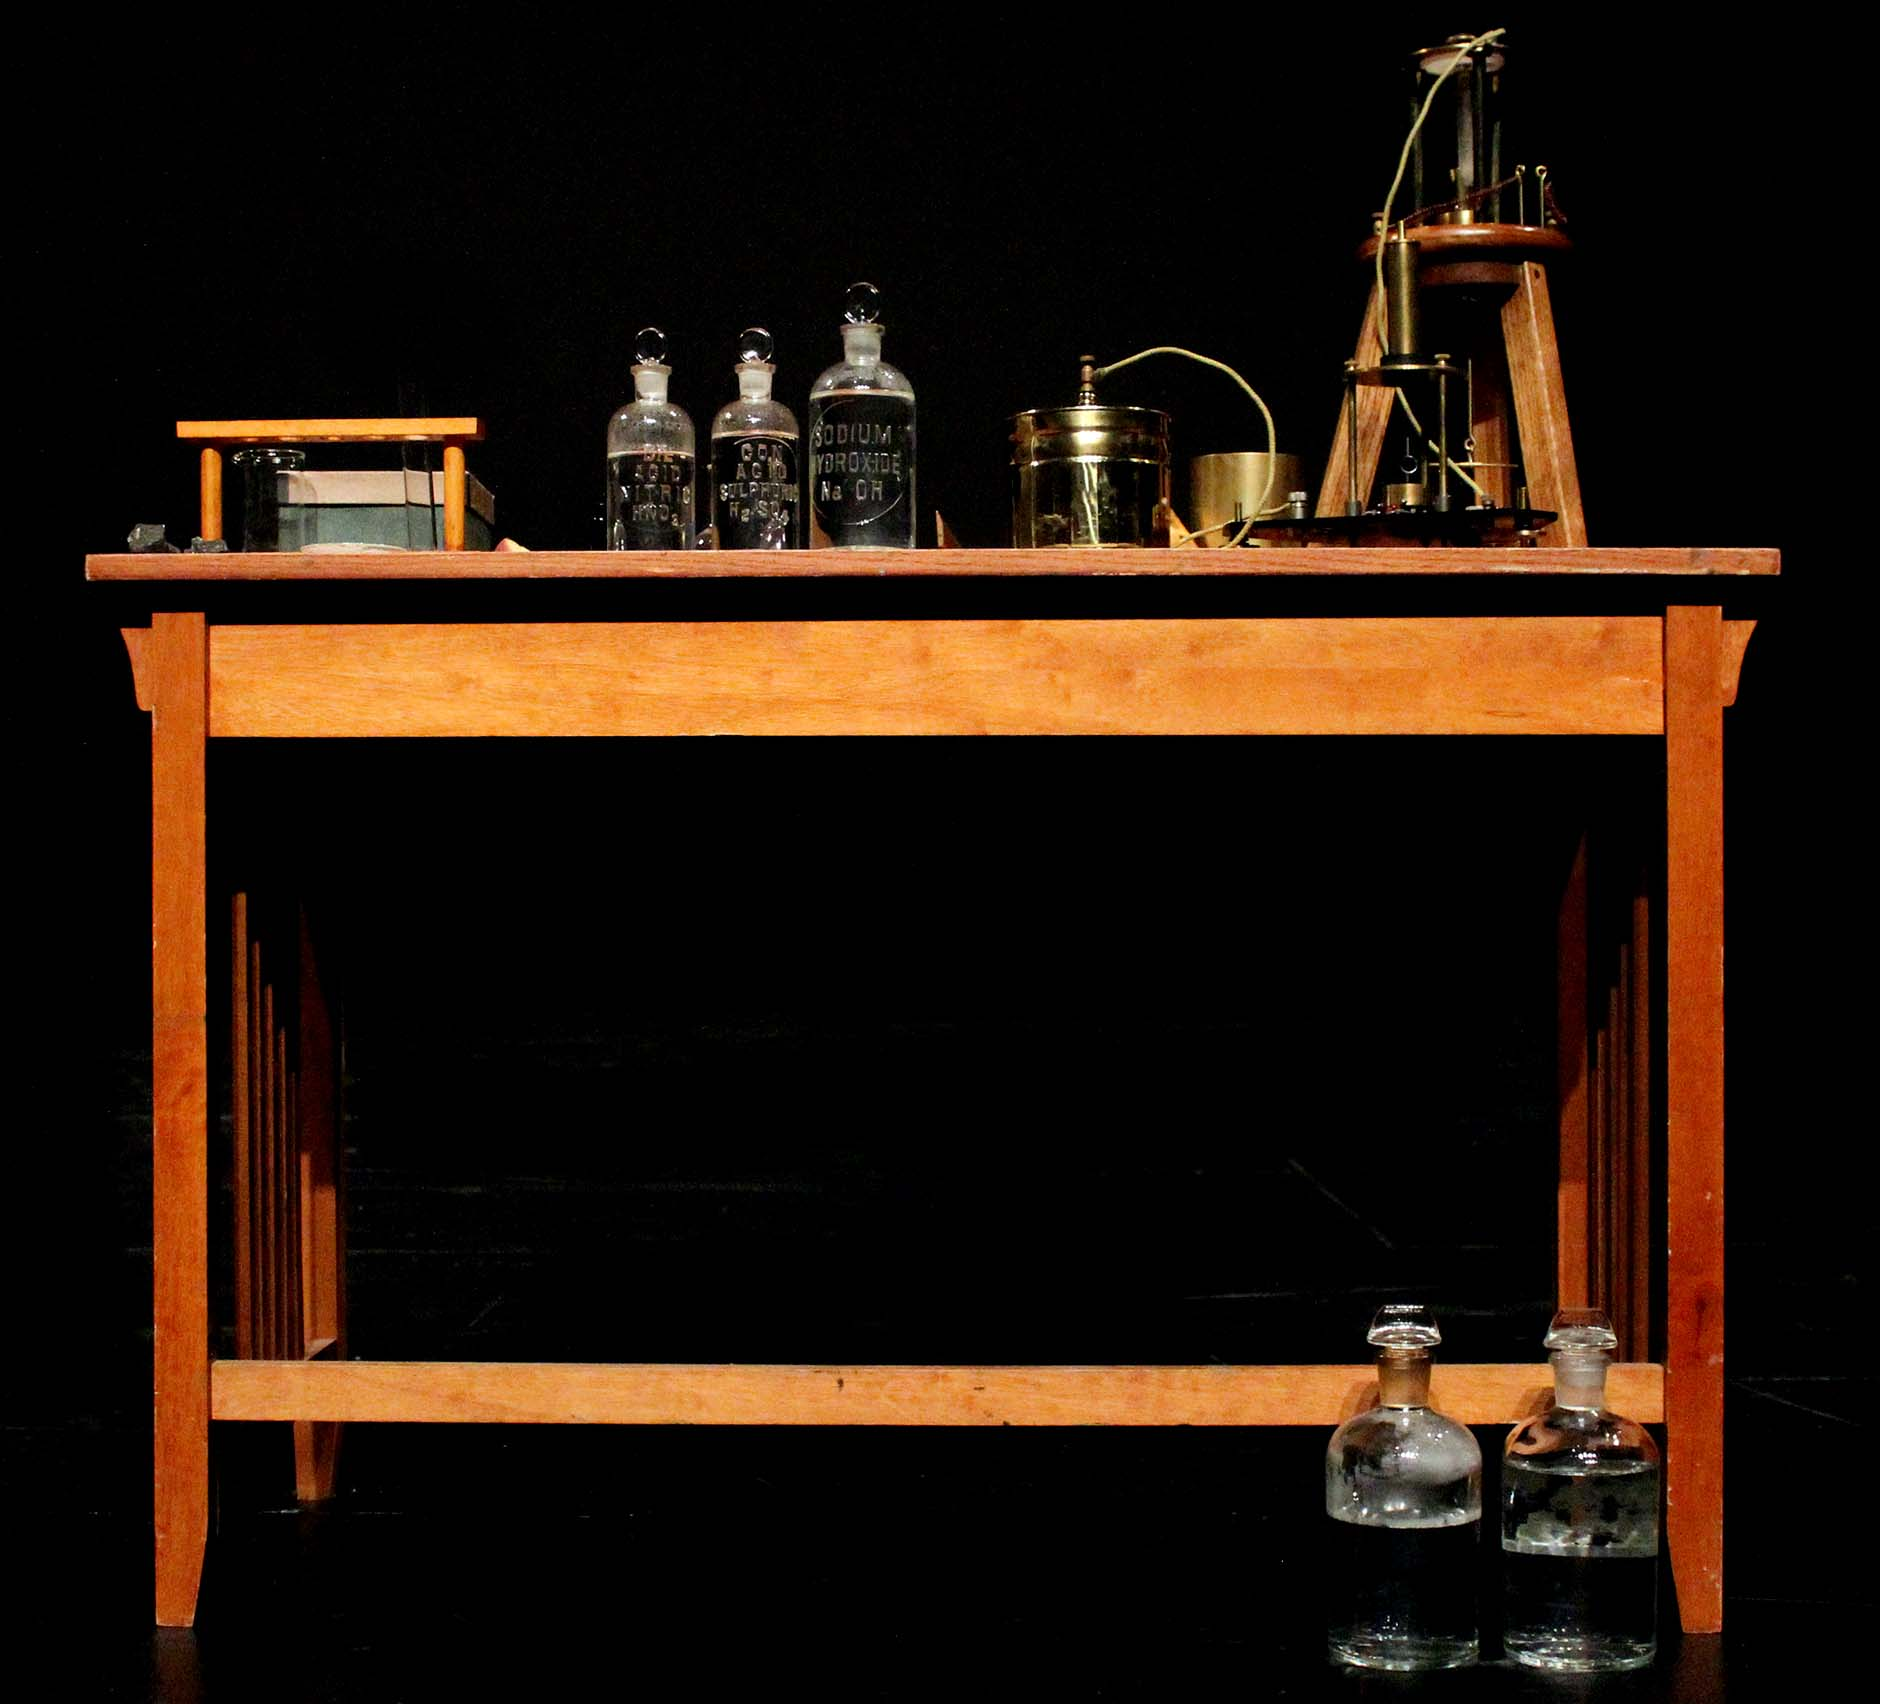 Marie Curie's desk where she did extensive research on radioactivity. Part of Susan M. Frontczak's performance of MANYA: The Living History of Marie Curie last Friday at Saddleback College's McKinley Theatre.